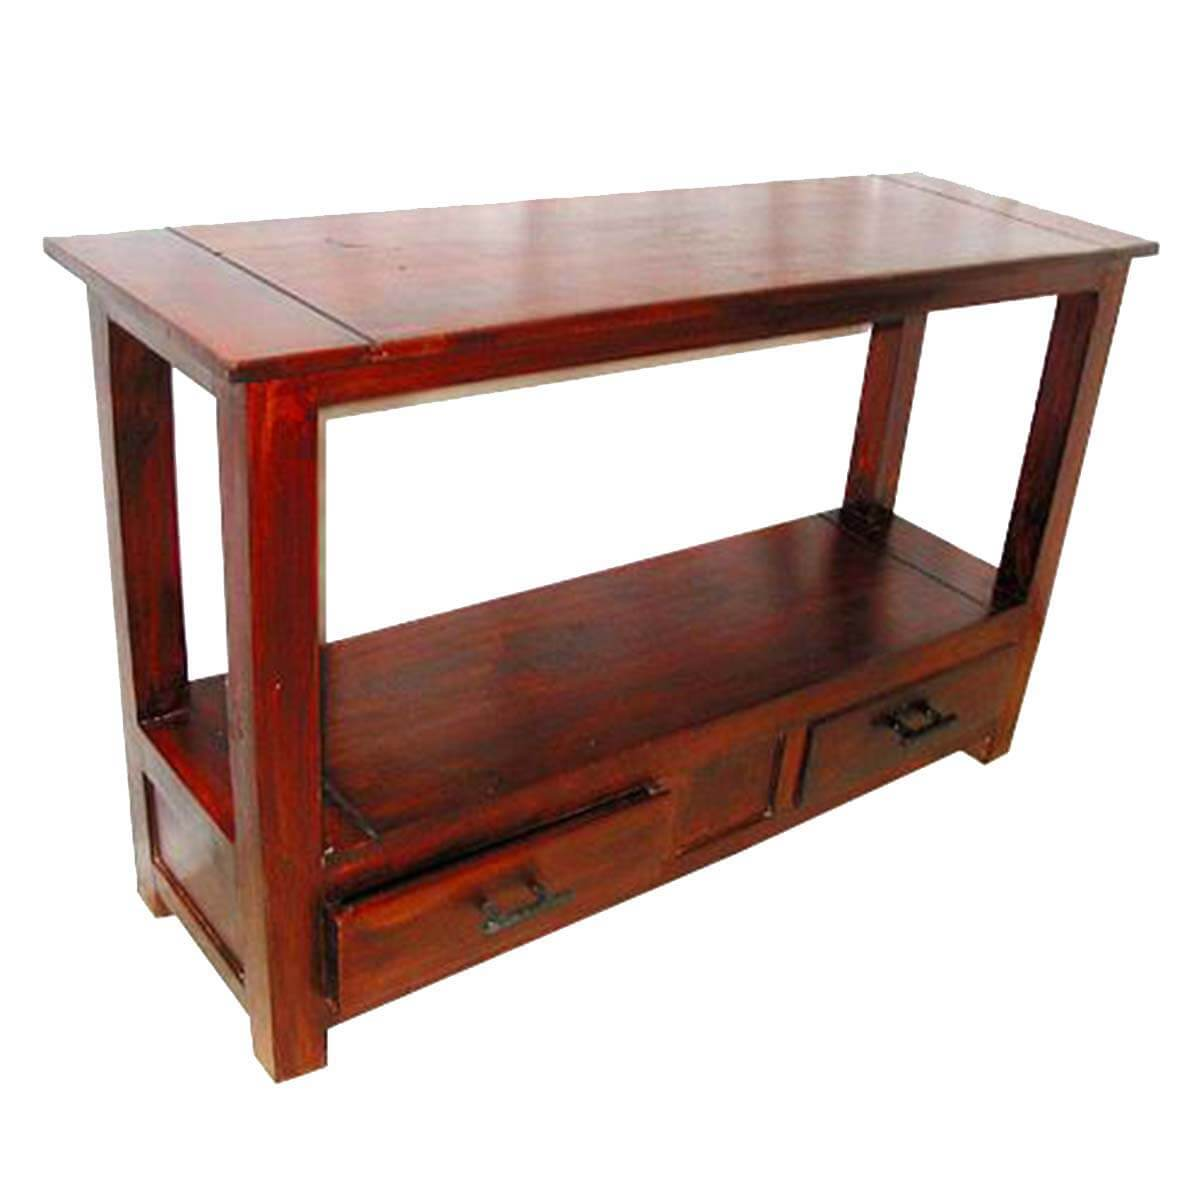 Hall Foyer Furniture : Solid wood console hall entry foyer table furniture